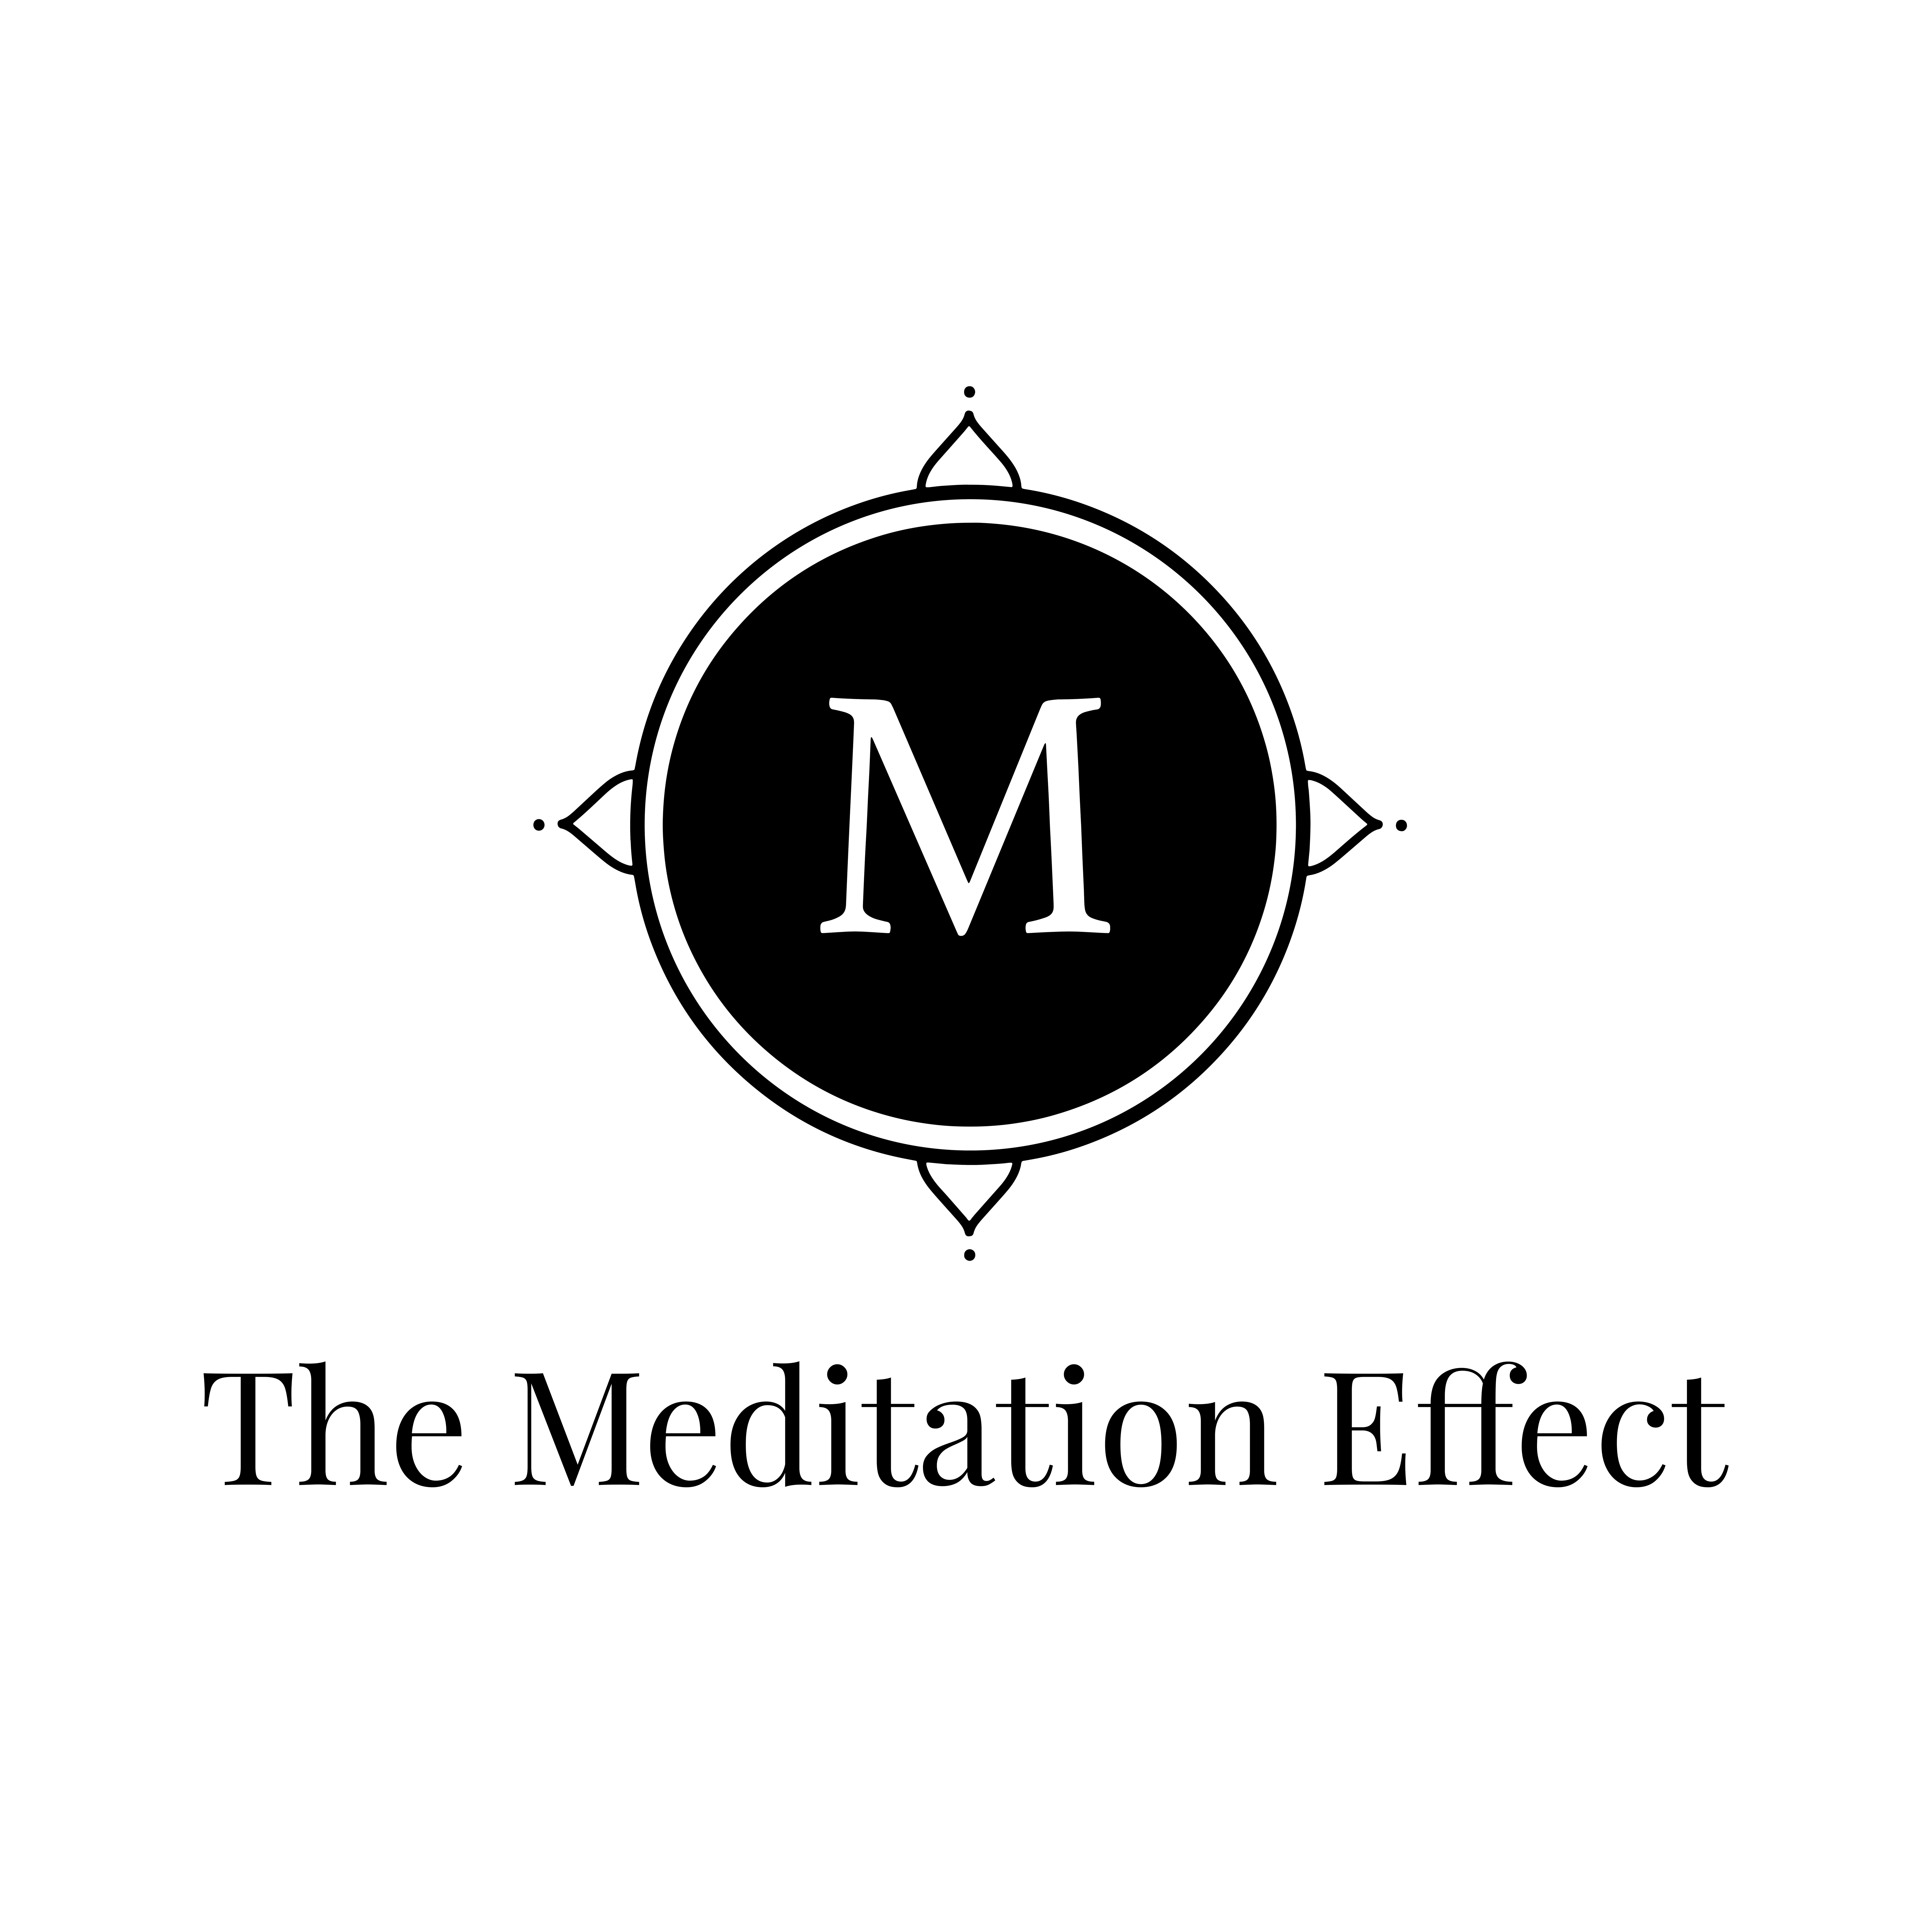 The Meditation Effect